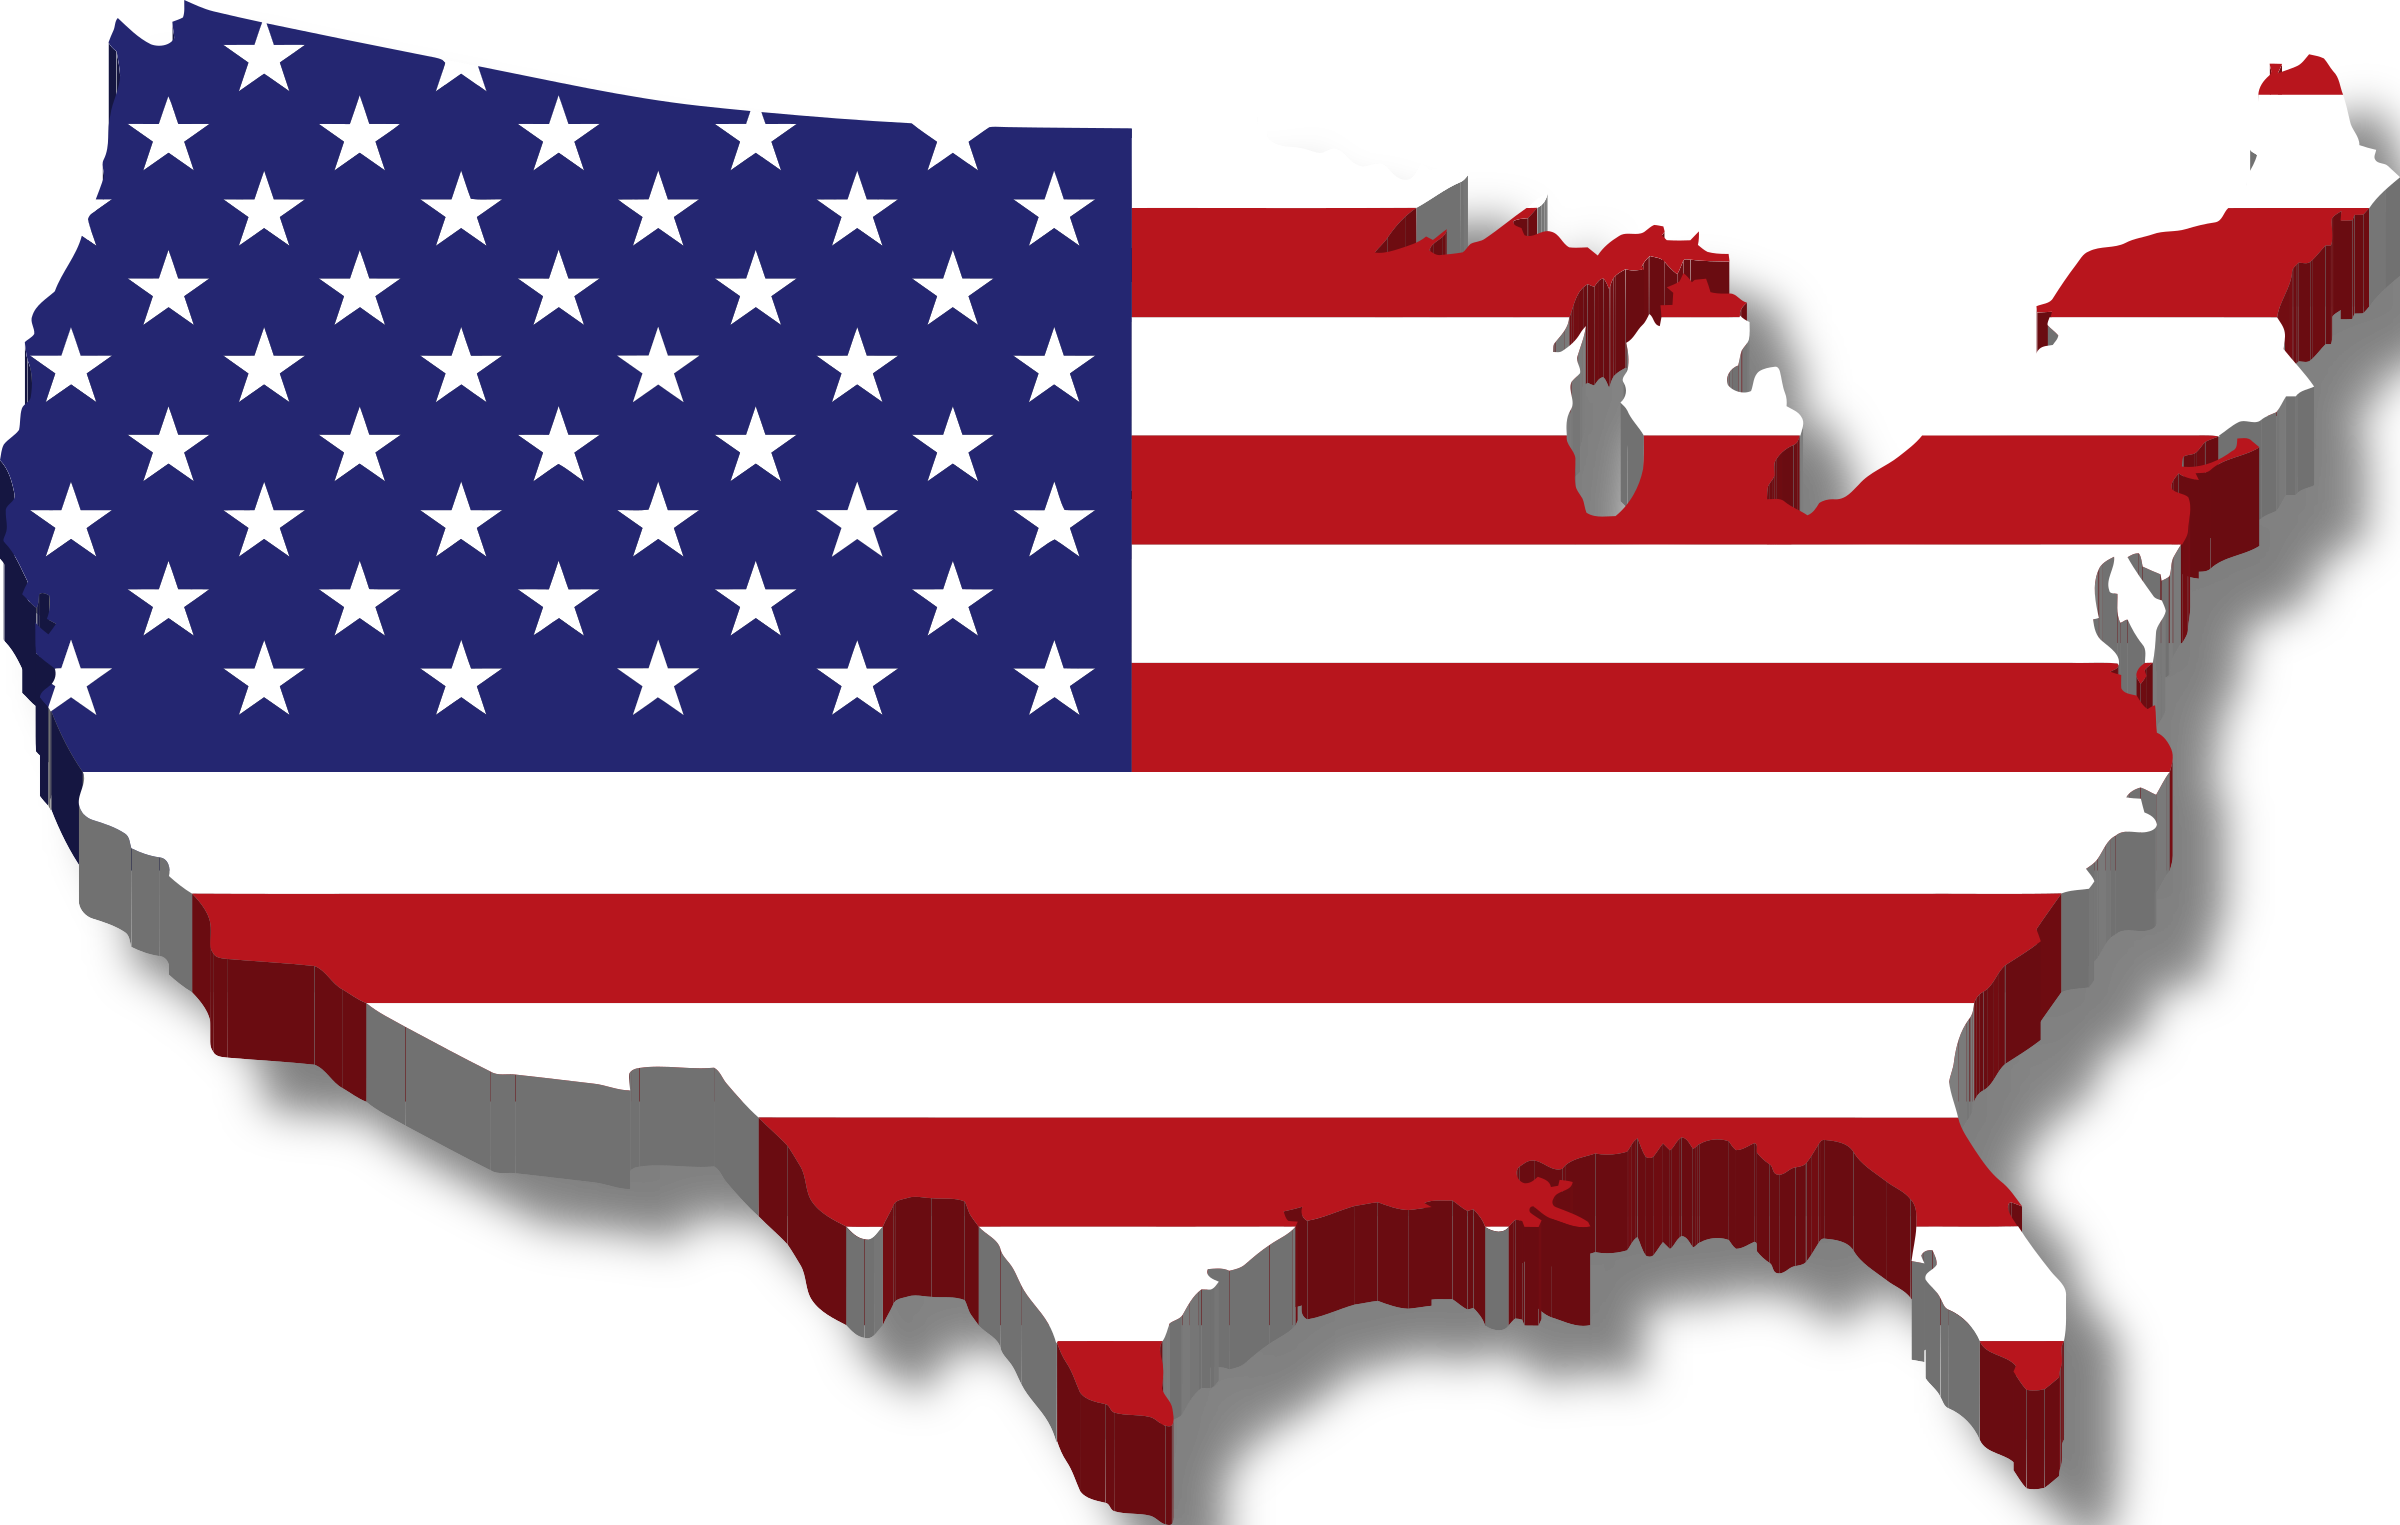 United states of america clipart transparent Clipart - America Map Flag w/ Drop Shadow transparent